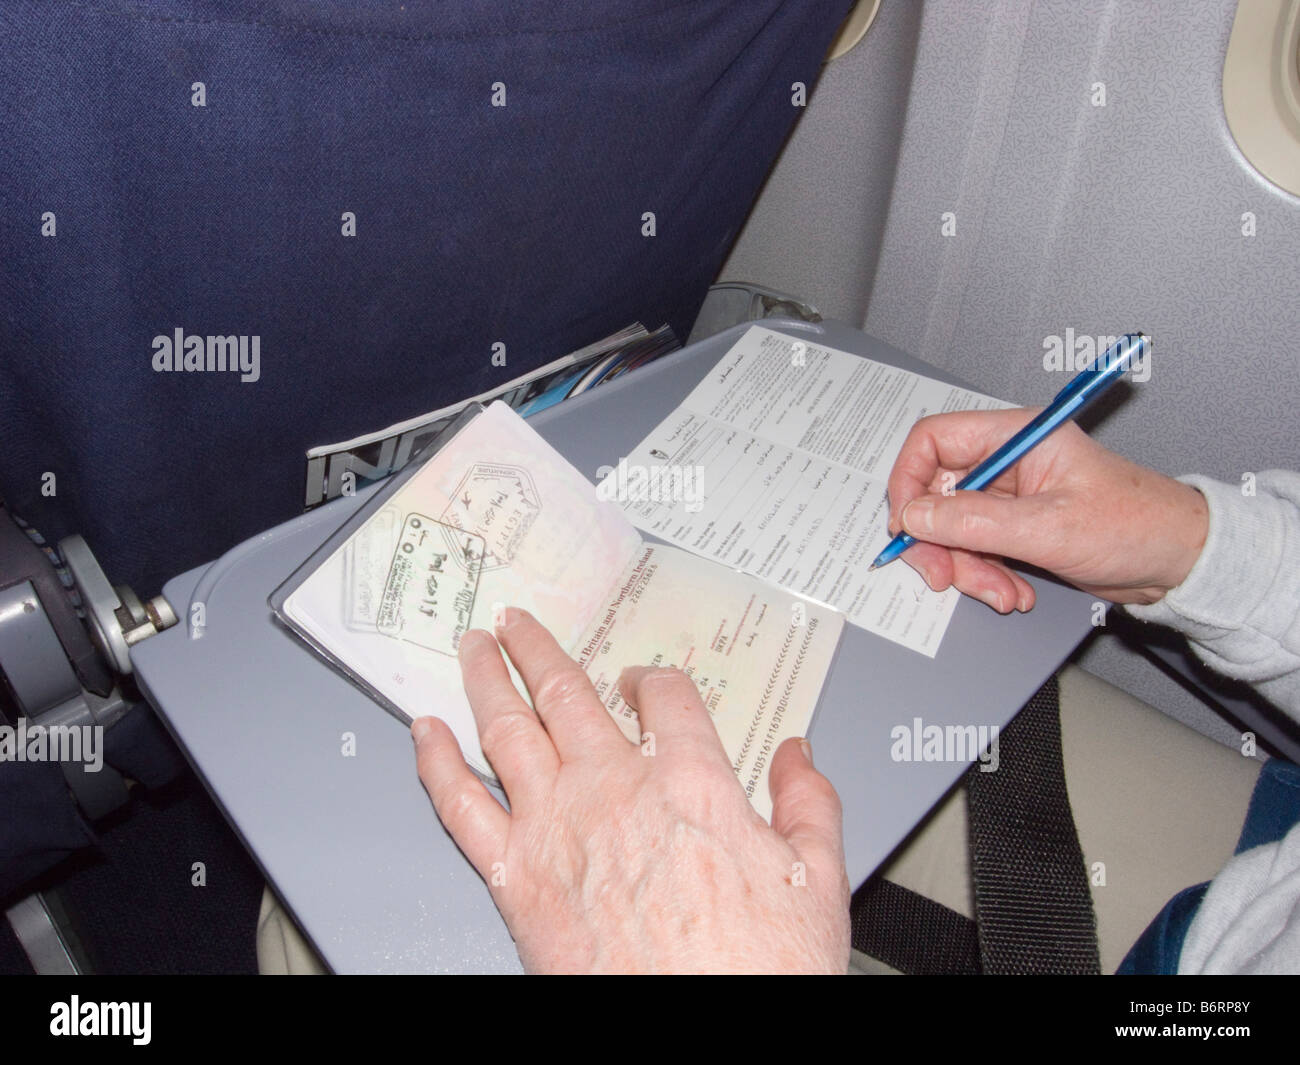 Person filling in Embarkation form with passport details on aeroplane seat table for entry into Morocco from UK - Stock Image